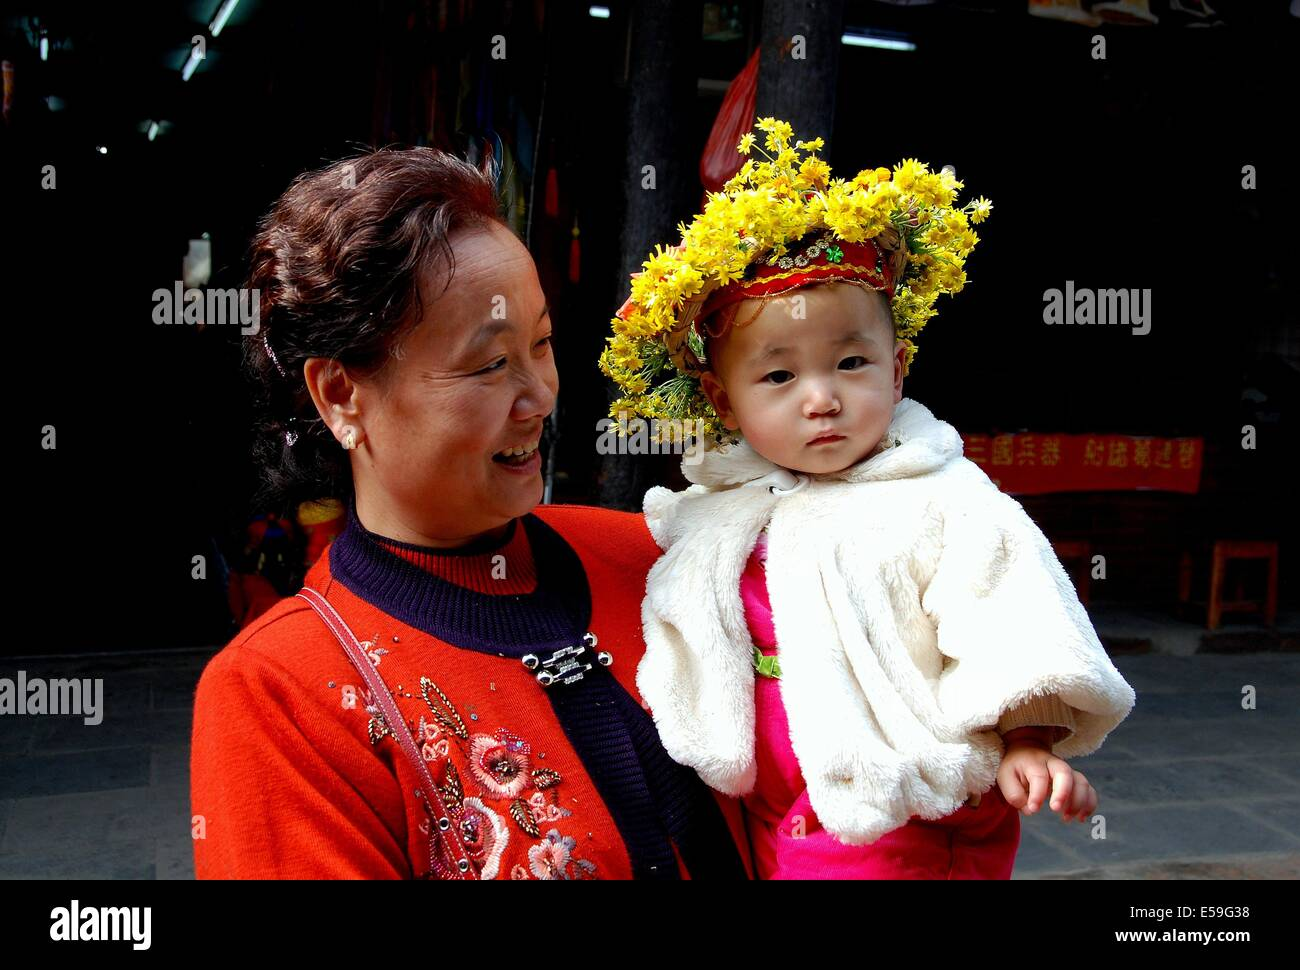 Huang Long Xi, China:  Grandmother with her baby grandson wearing a traditional village floral wreath hat - Stock Image